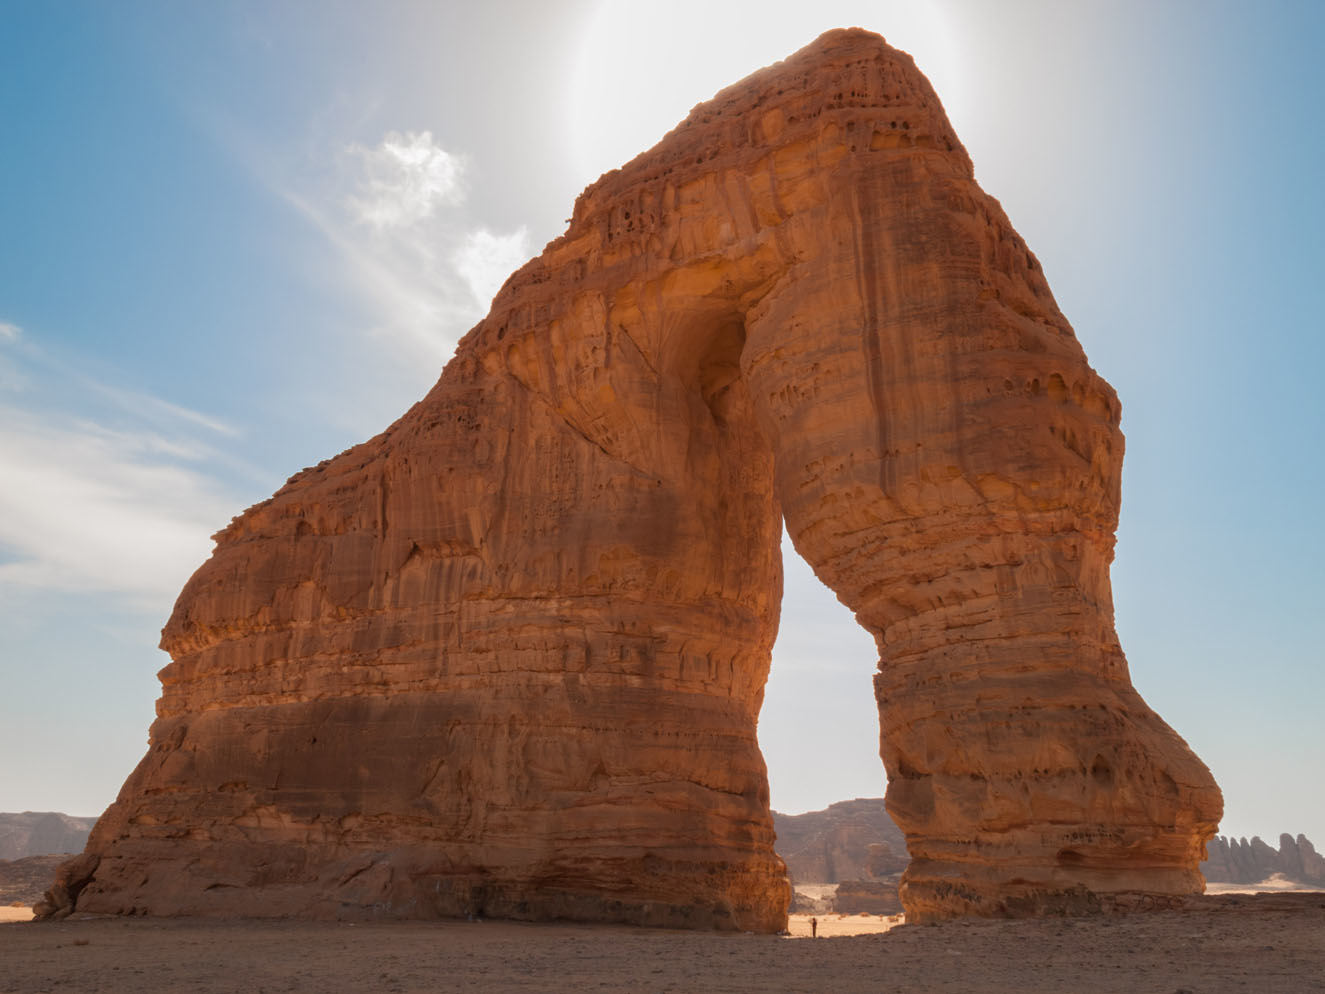 Al Ula, Getty Images